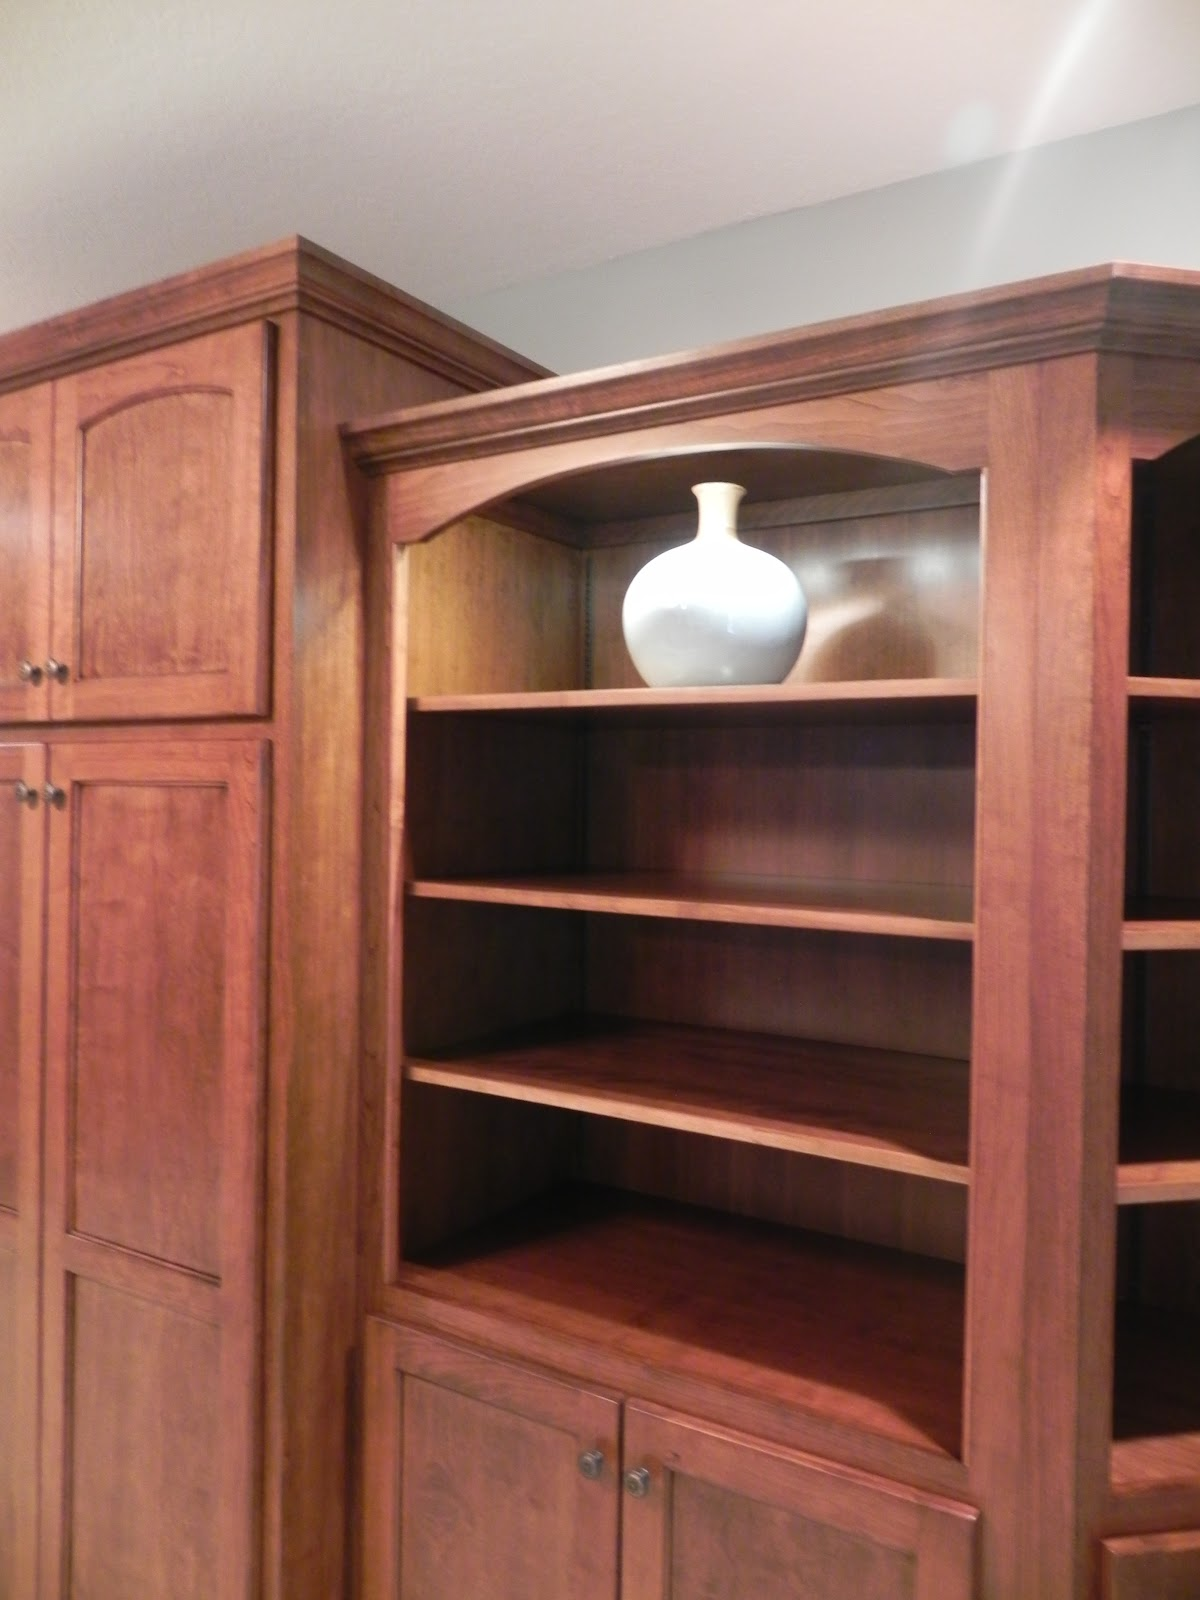 Adkisson 39 s cabinets cherry bookcases and alder wood for Alder kitchen cabinets